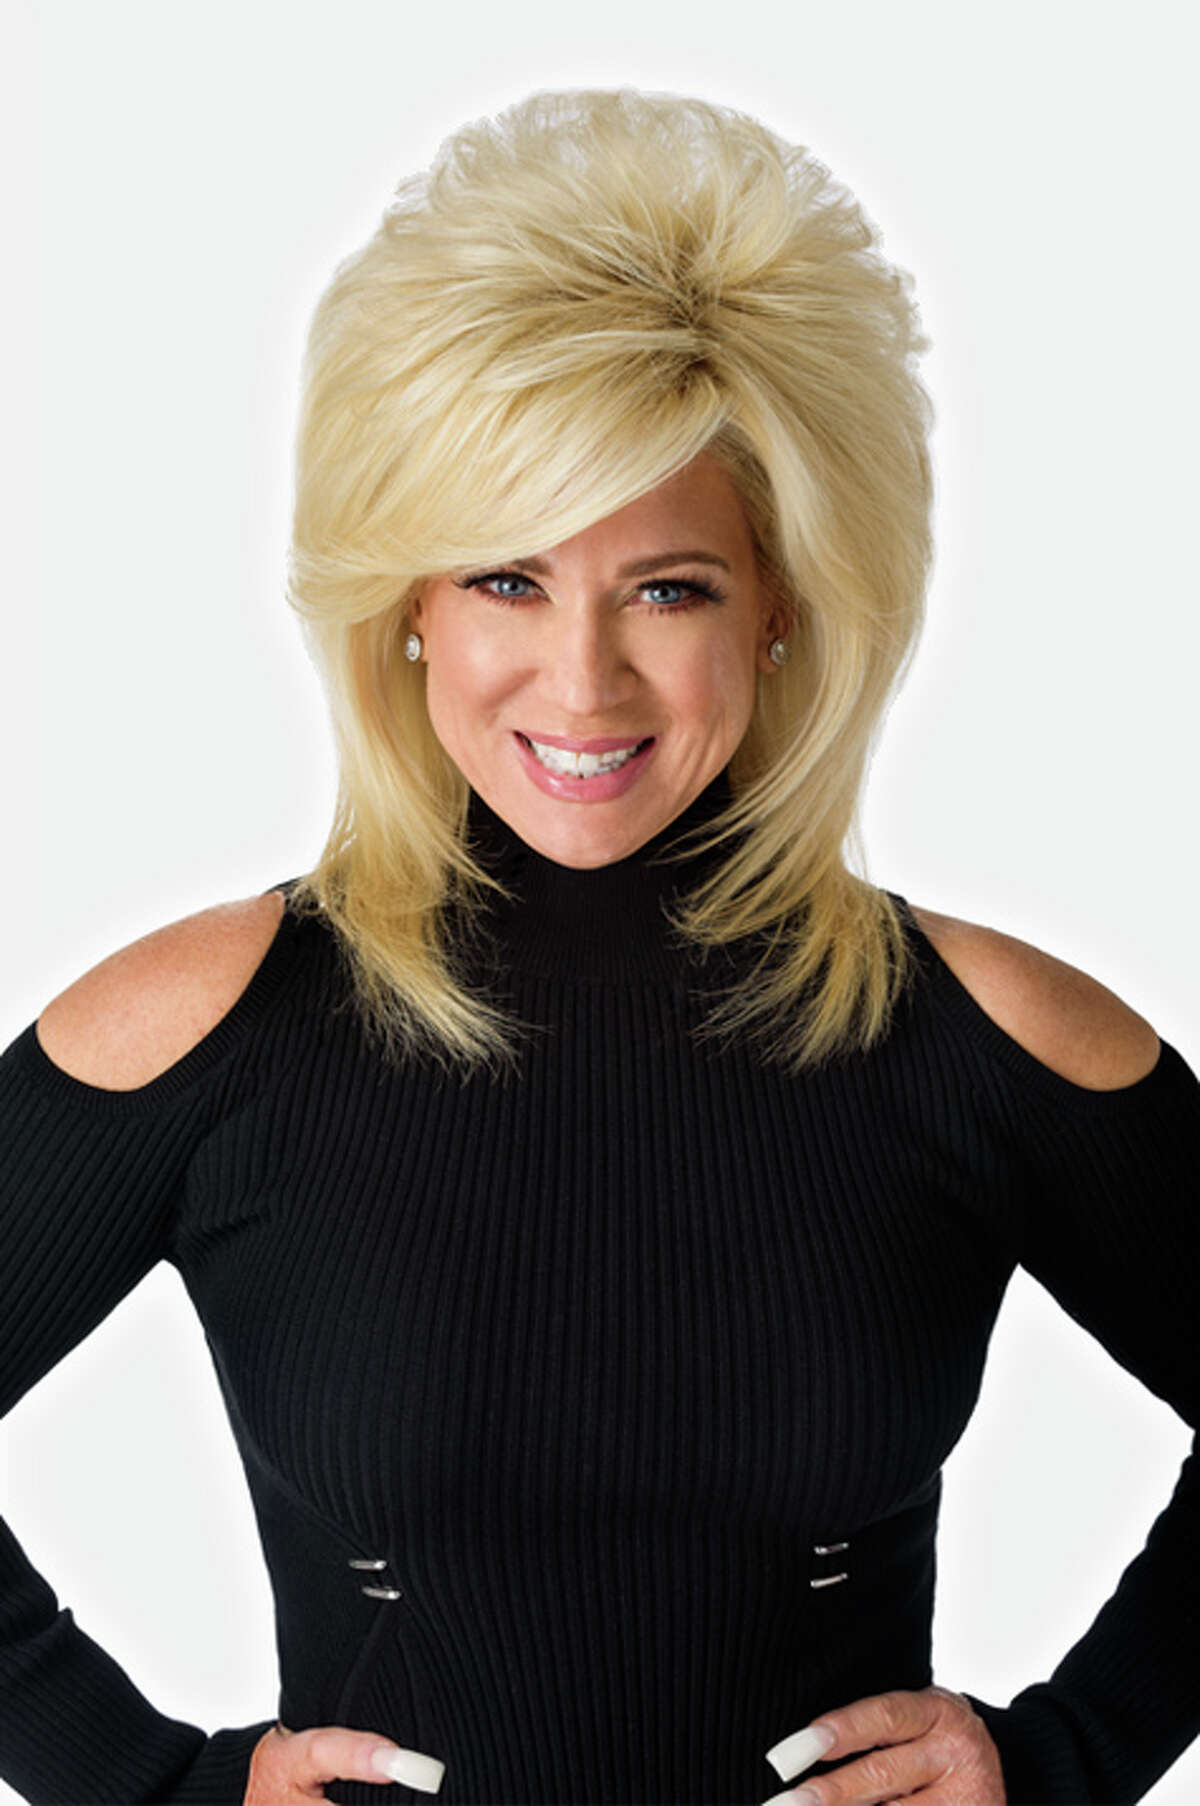 Pictured is Theresa Caputo.